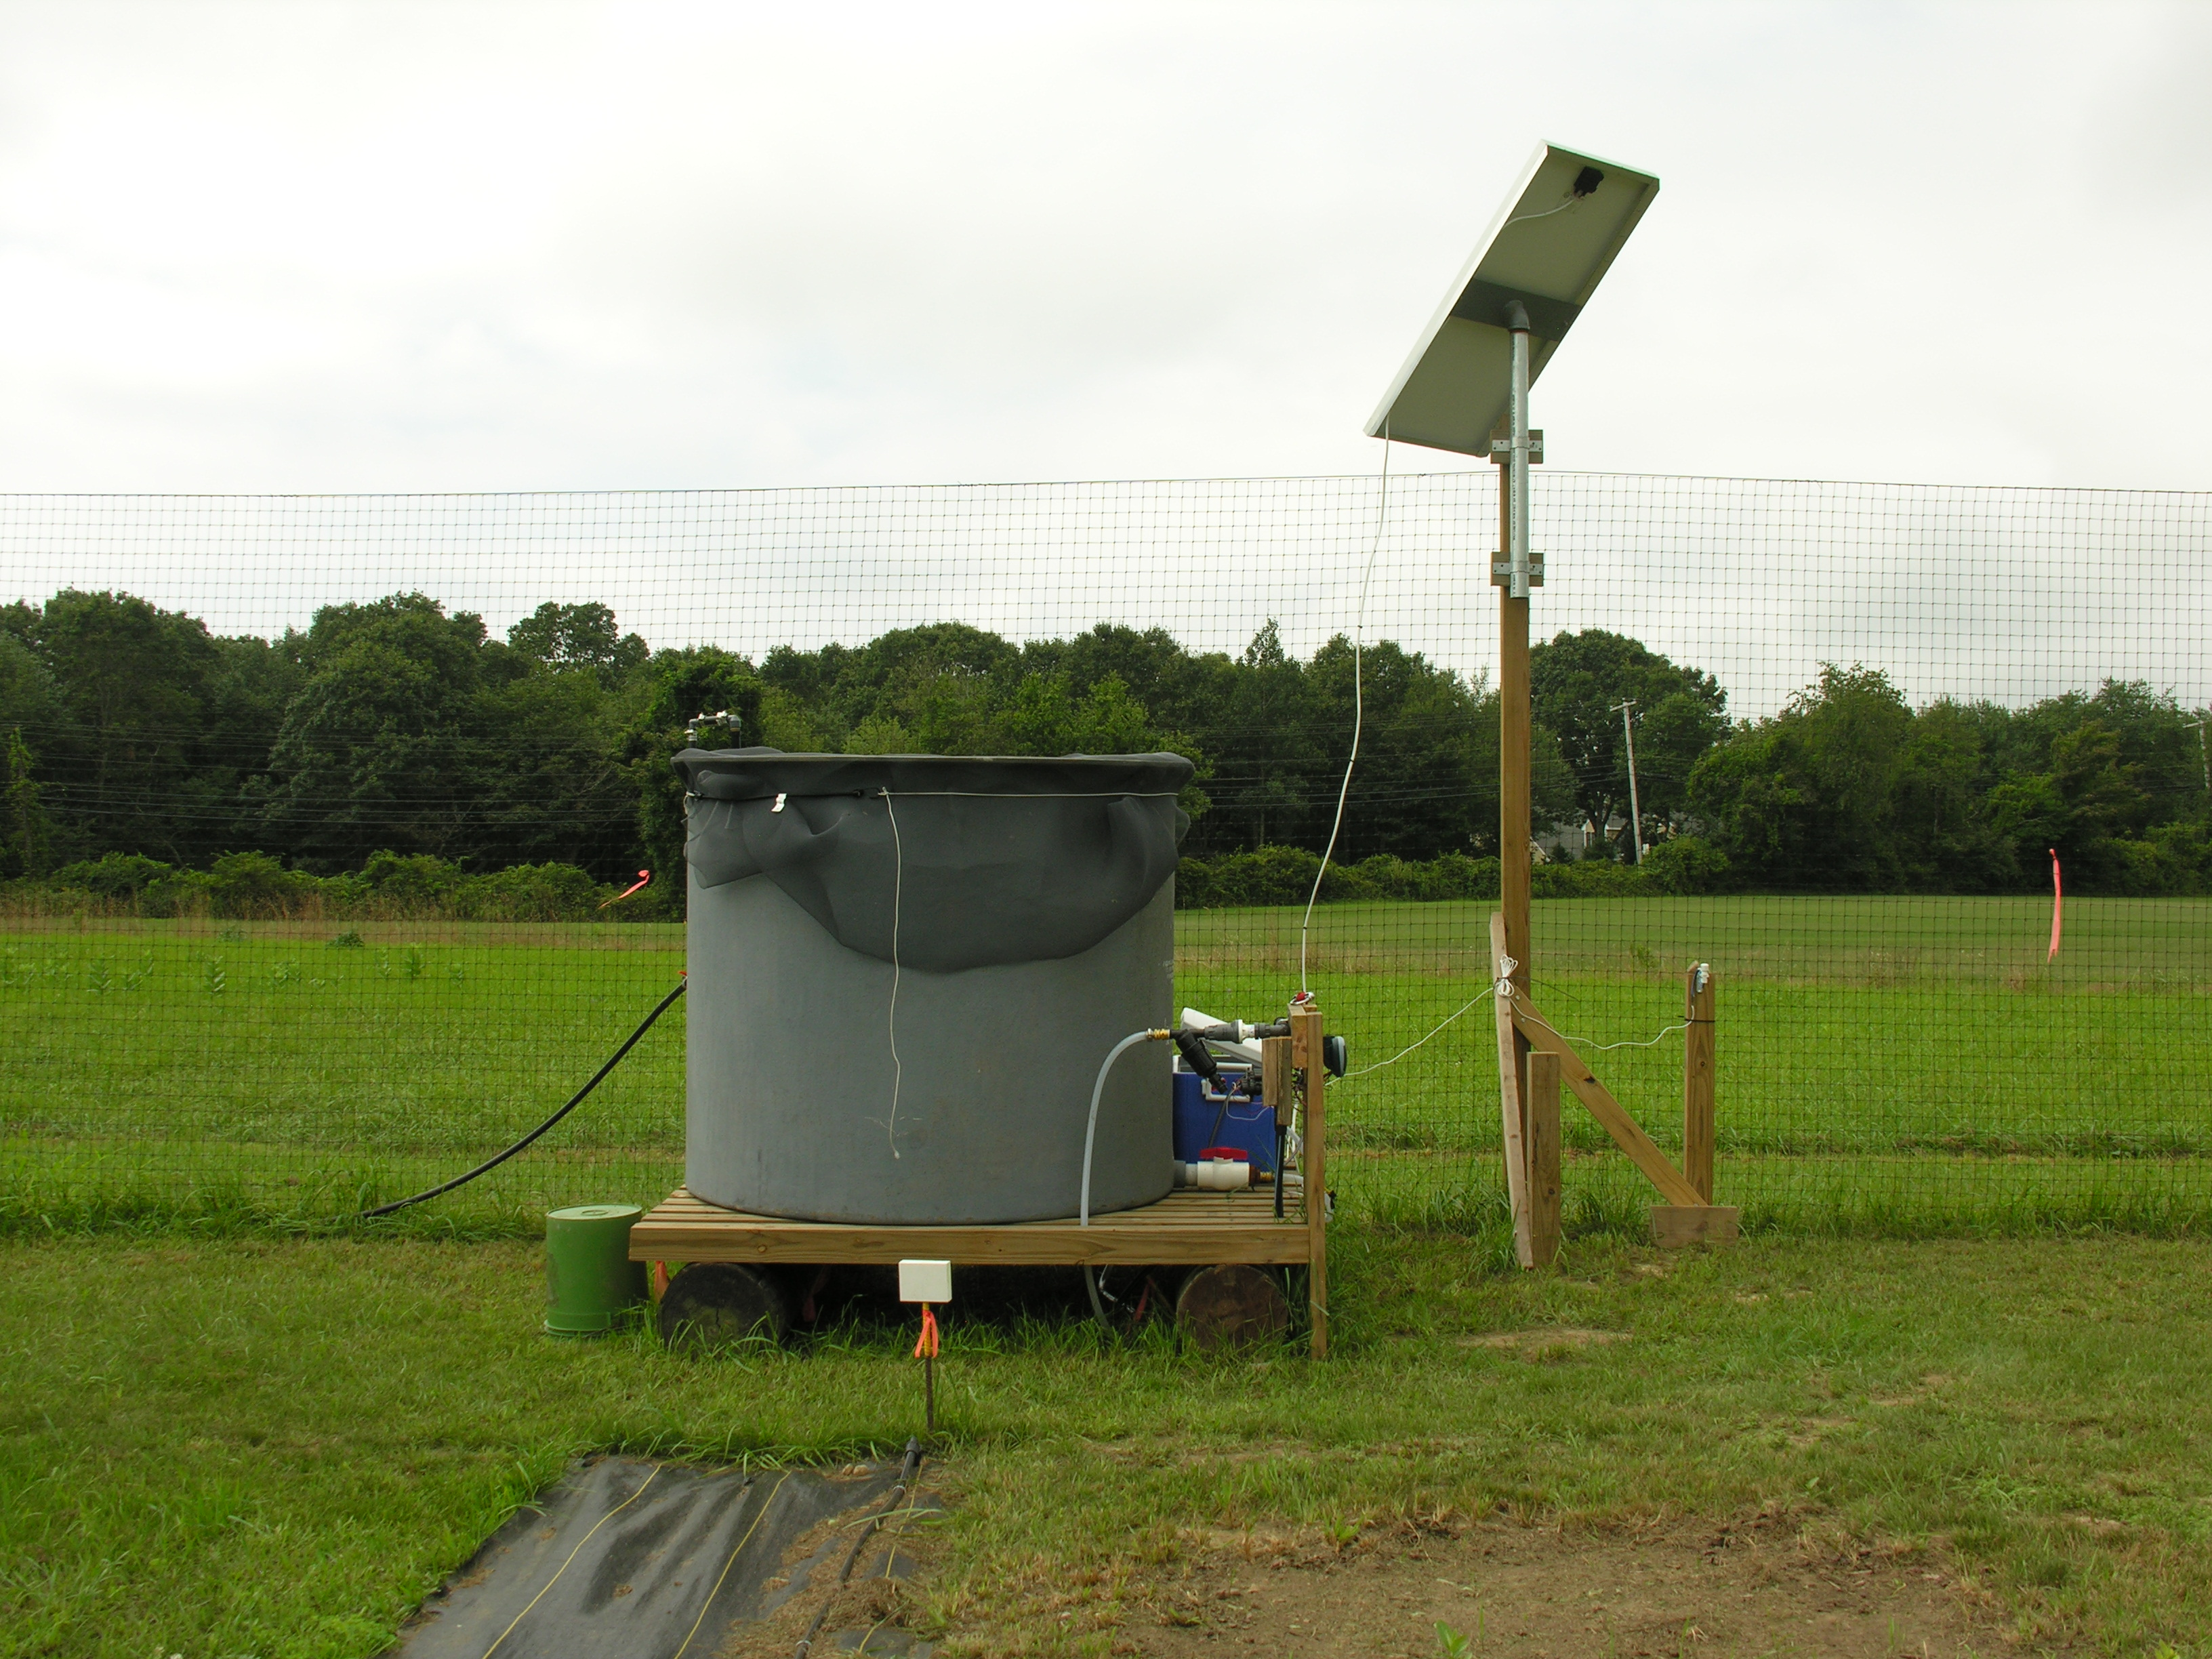 The solar watering system